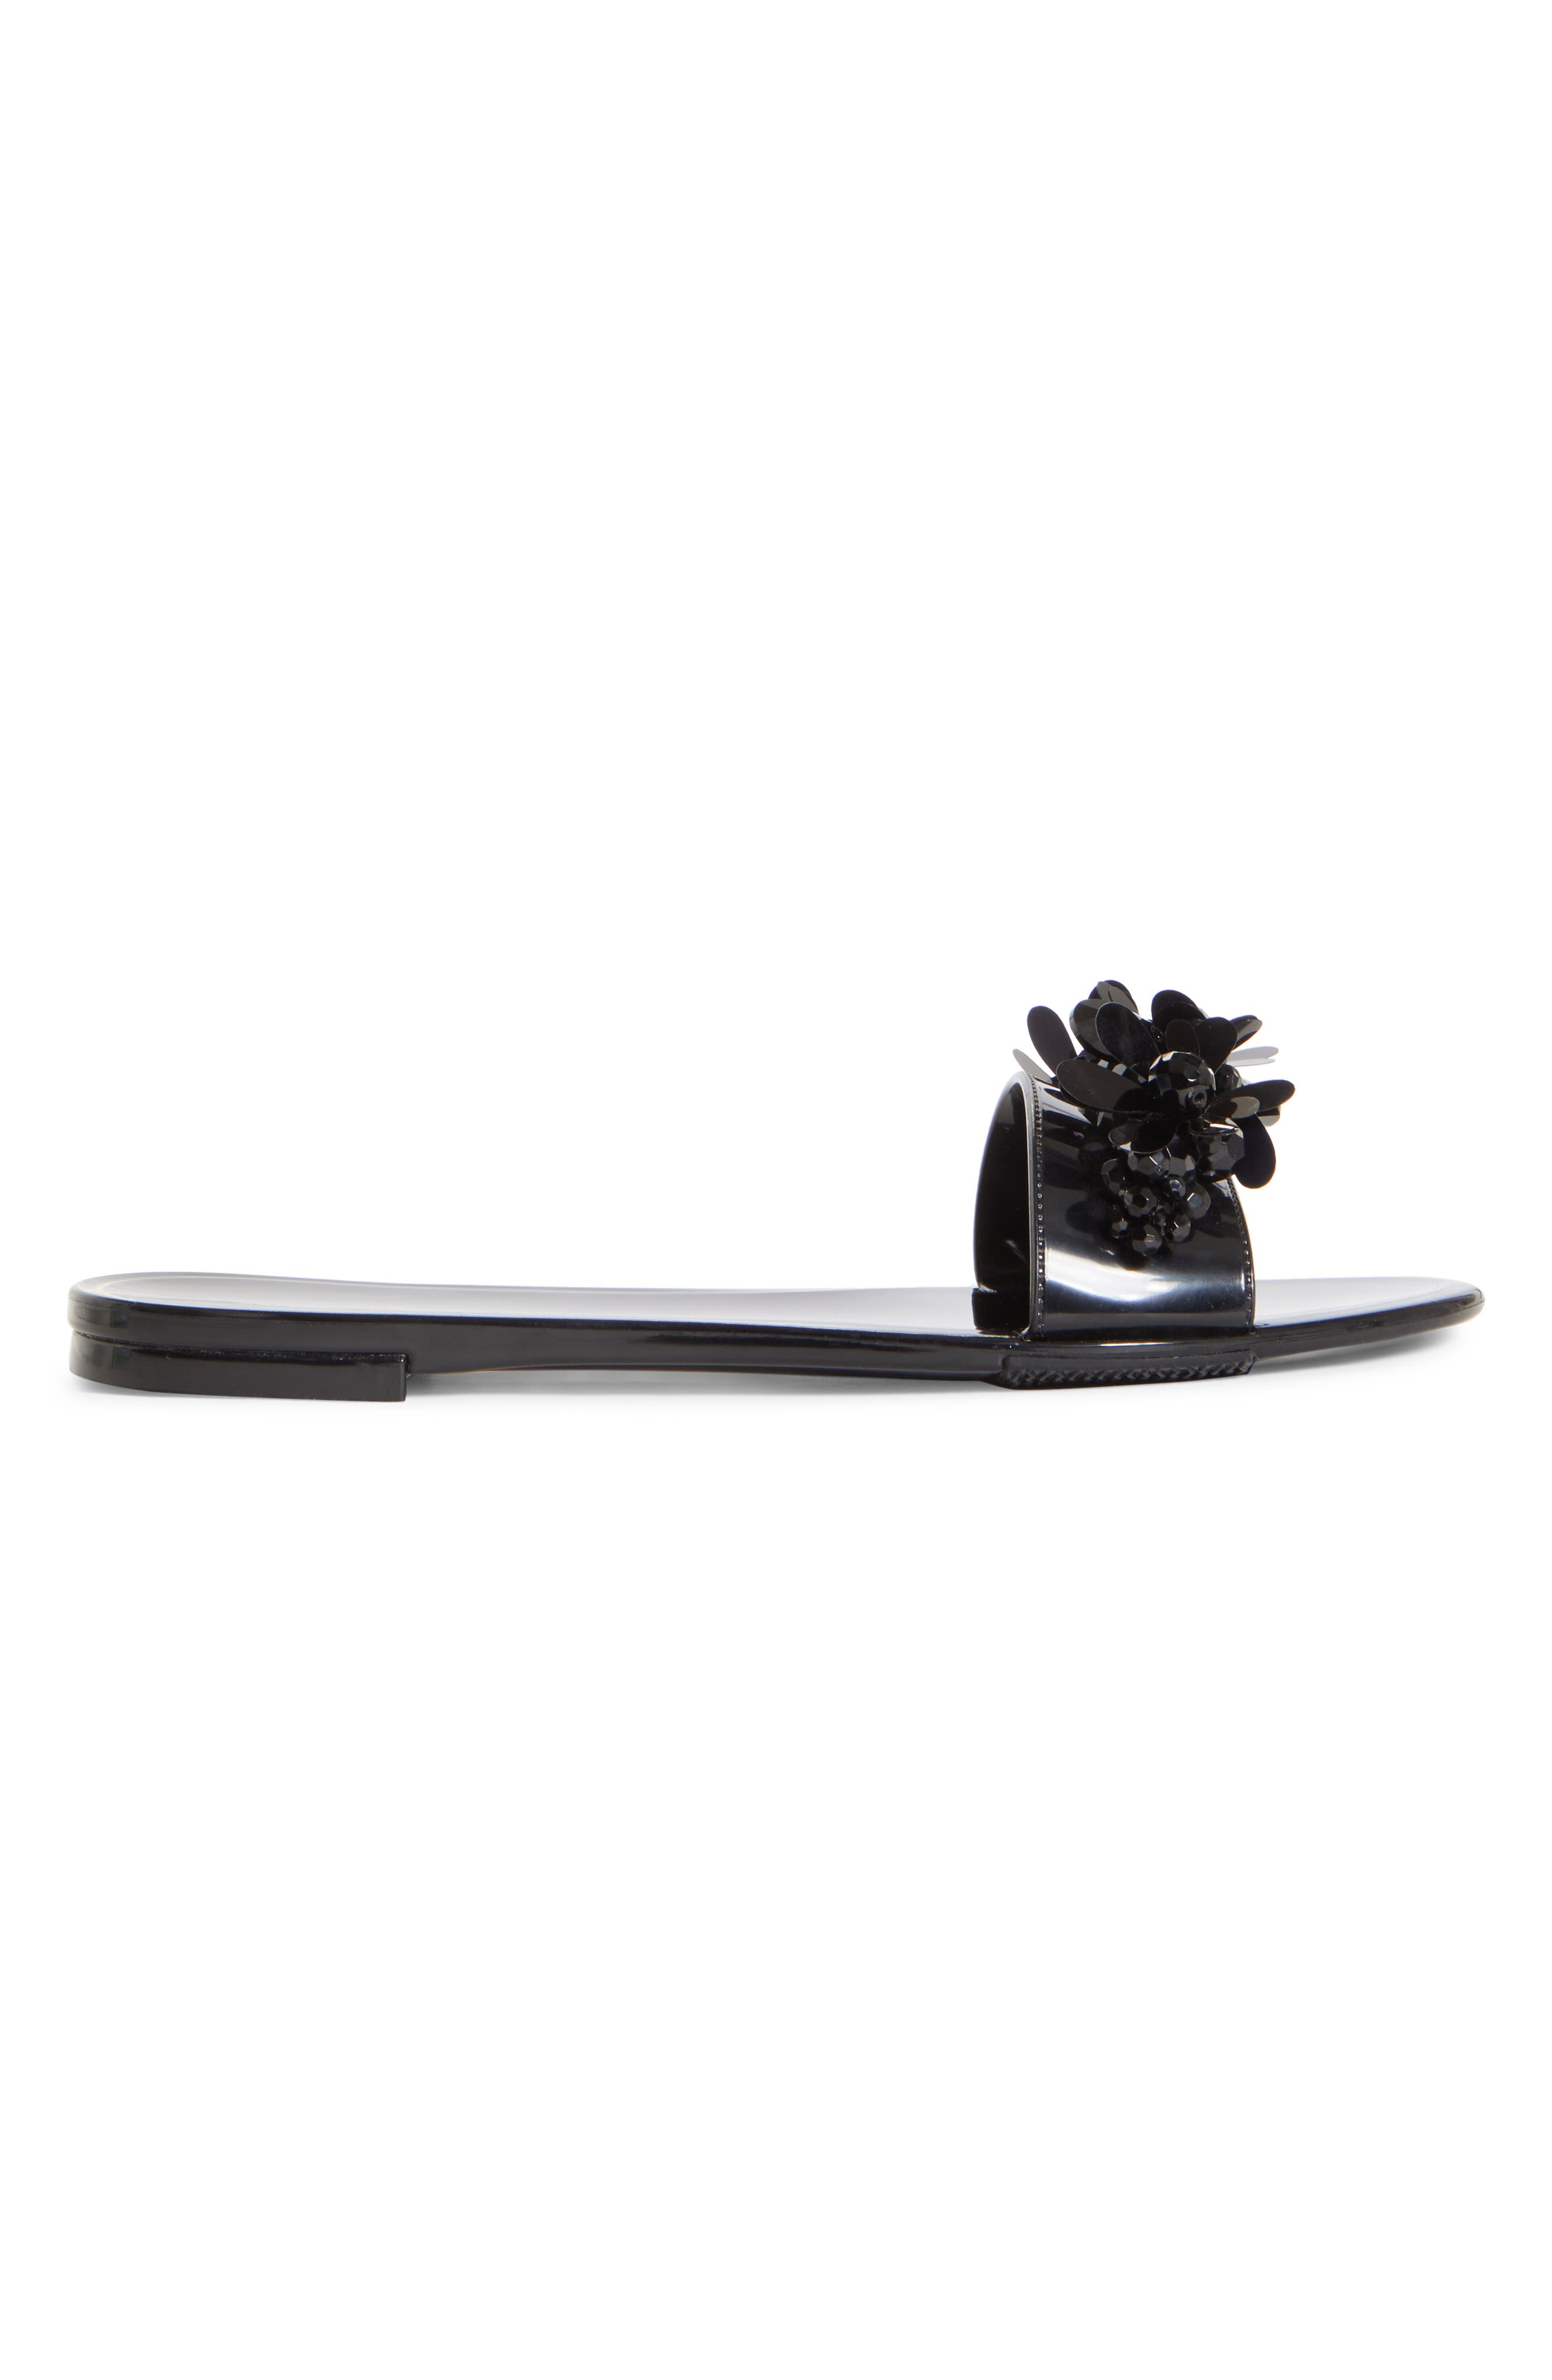 SIMONE ROCHA,                             Embellished Jelly Slide Sandal,                             Alternate thumbnail 3, color,                             BLACK/ JET